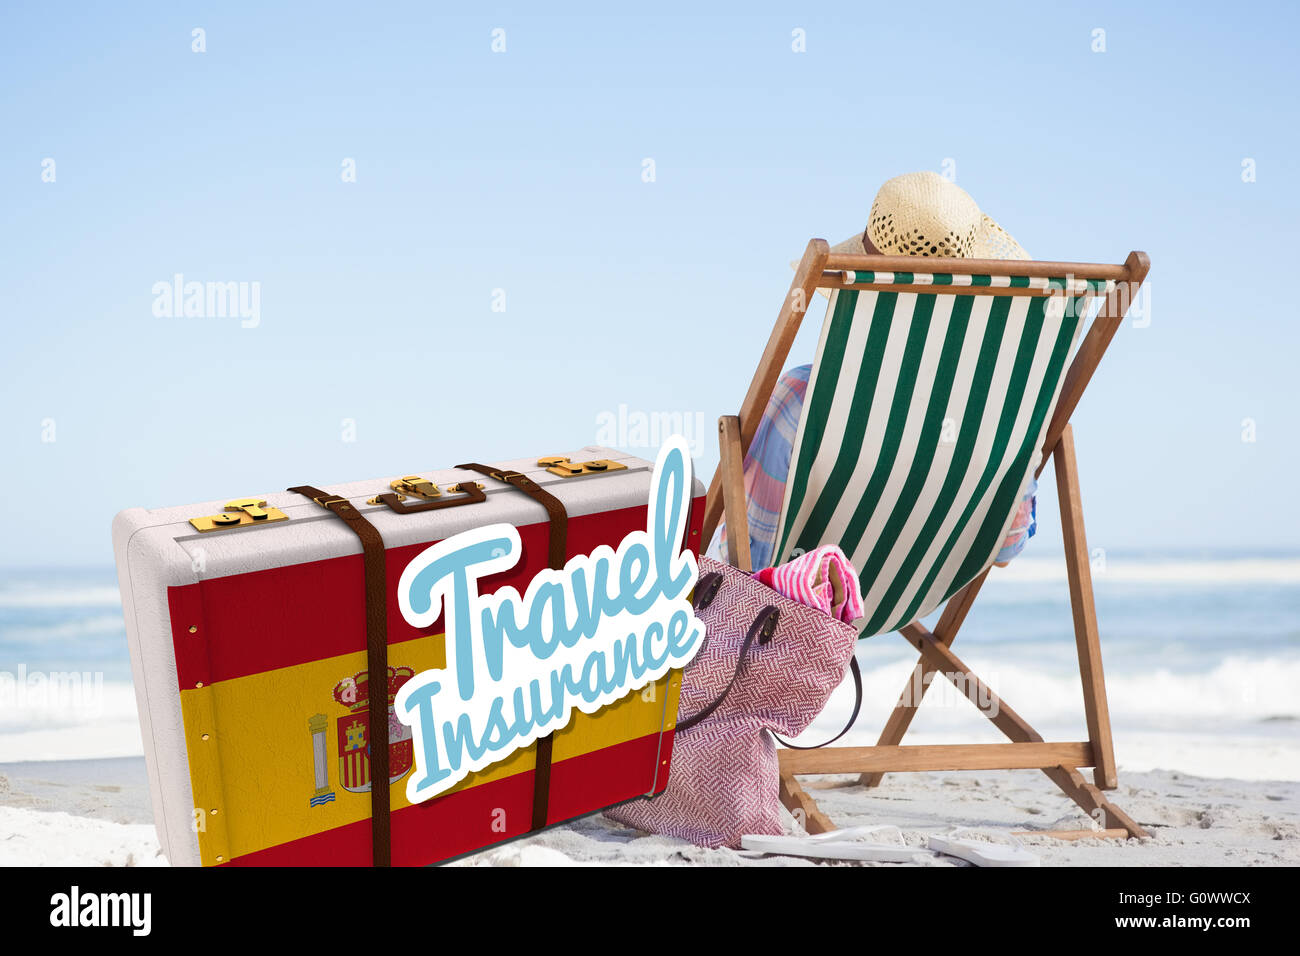 Composite image of travel insurance message on a spanish suitcase - Stock Image